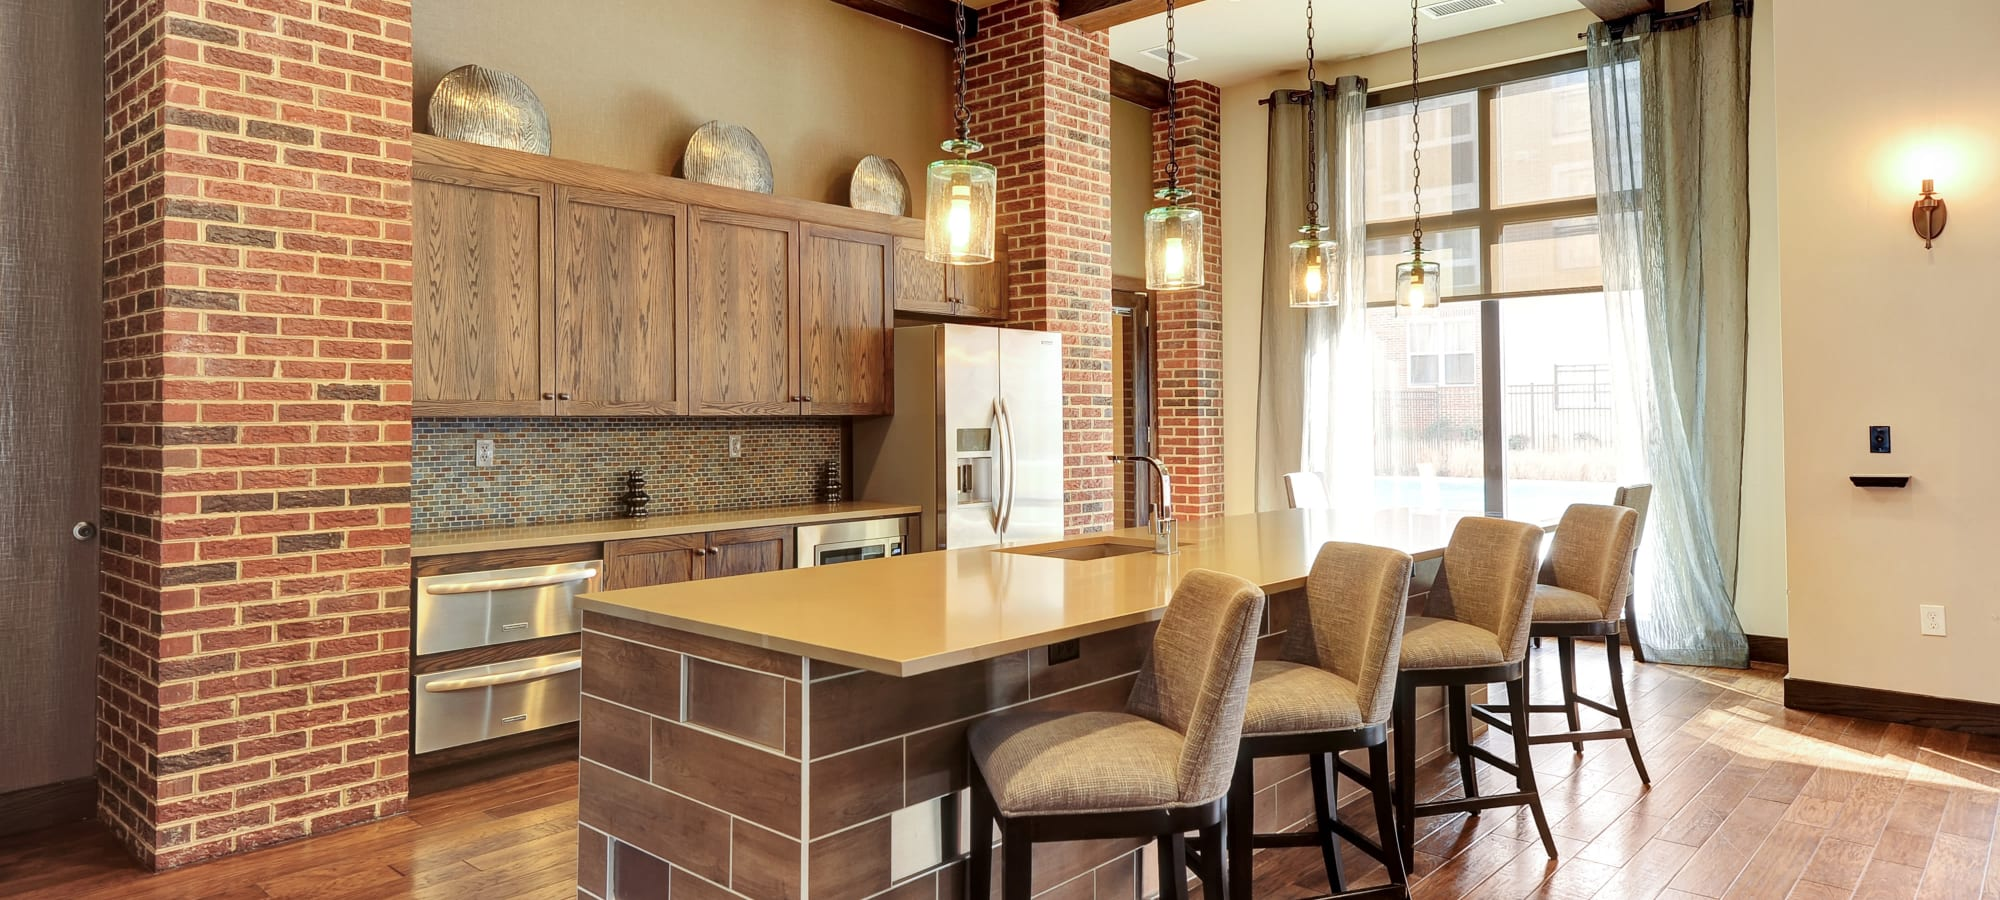 Kitchen at The Mark at Brickyard Apartment Homes in Beltsville, Maryland.